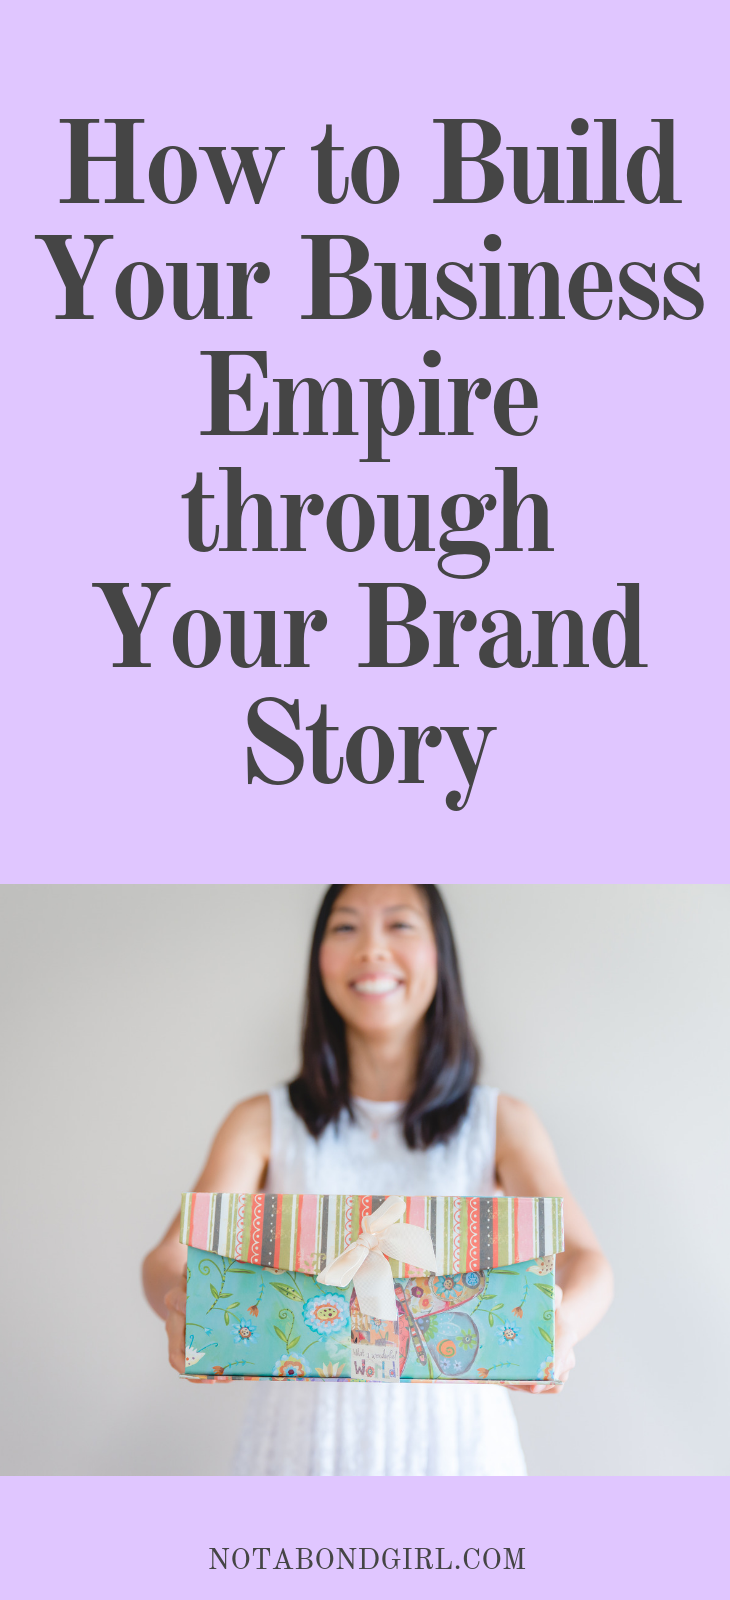 3 Secrets to Telling a Compelling Brand Story